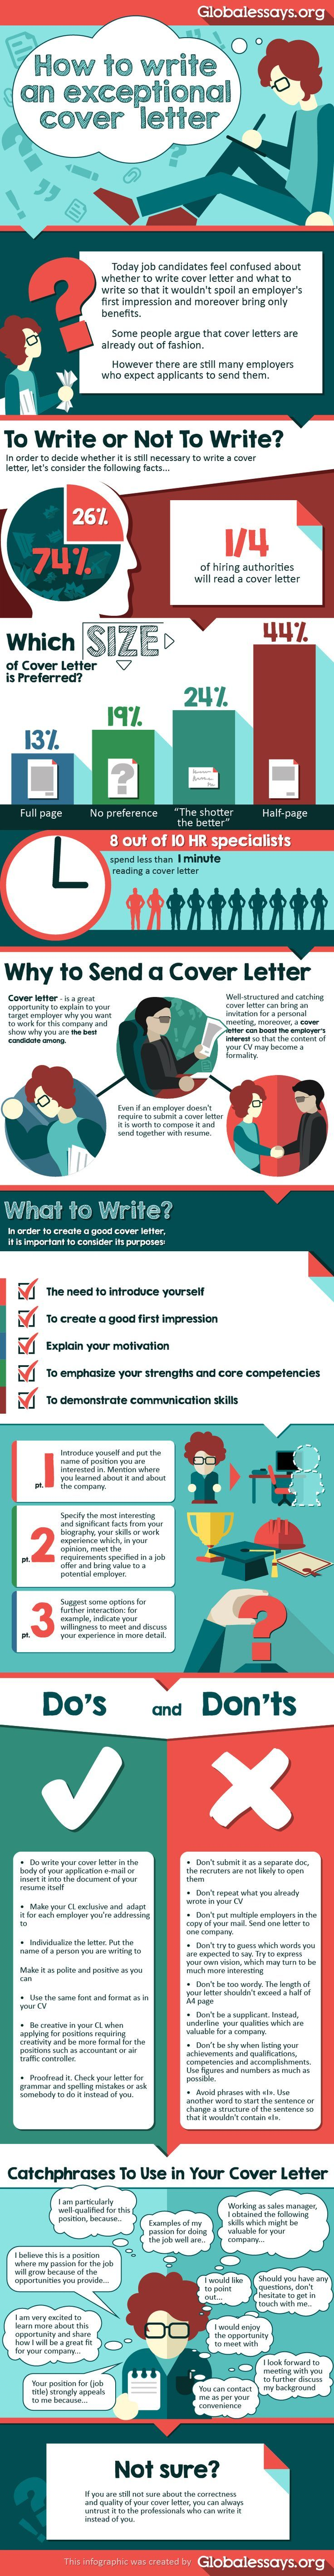 How to Write an Exceptional Cover Letter                                                                                                                                                                                 More